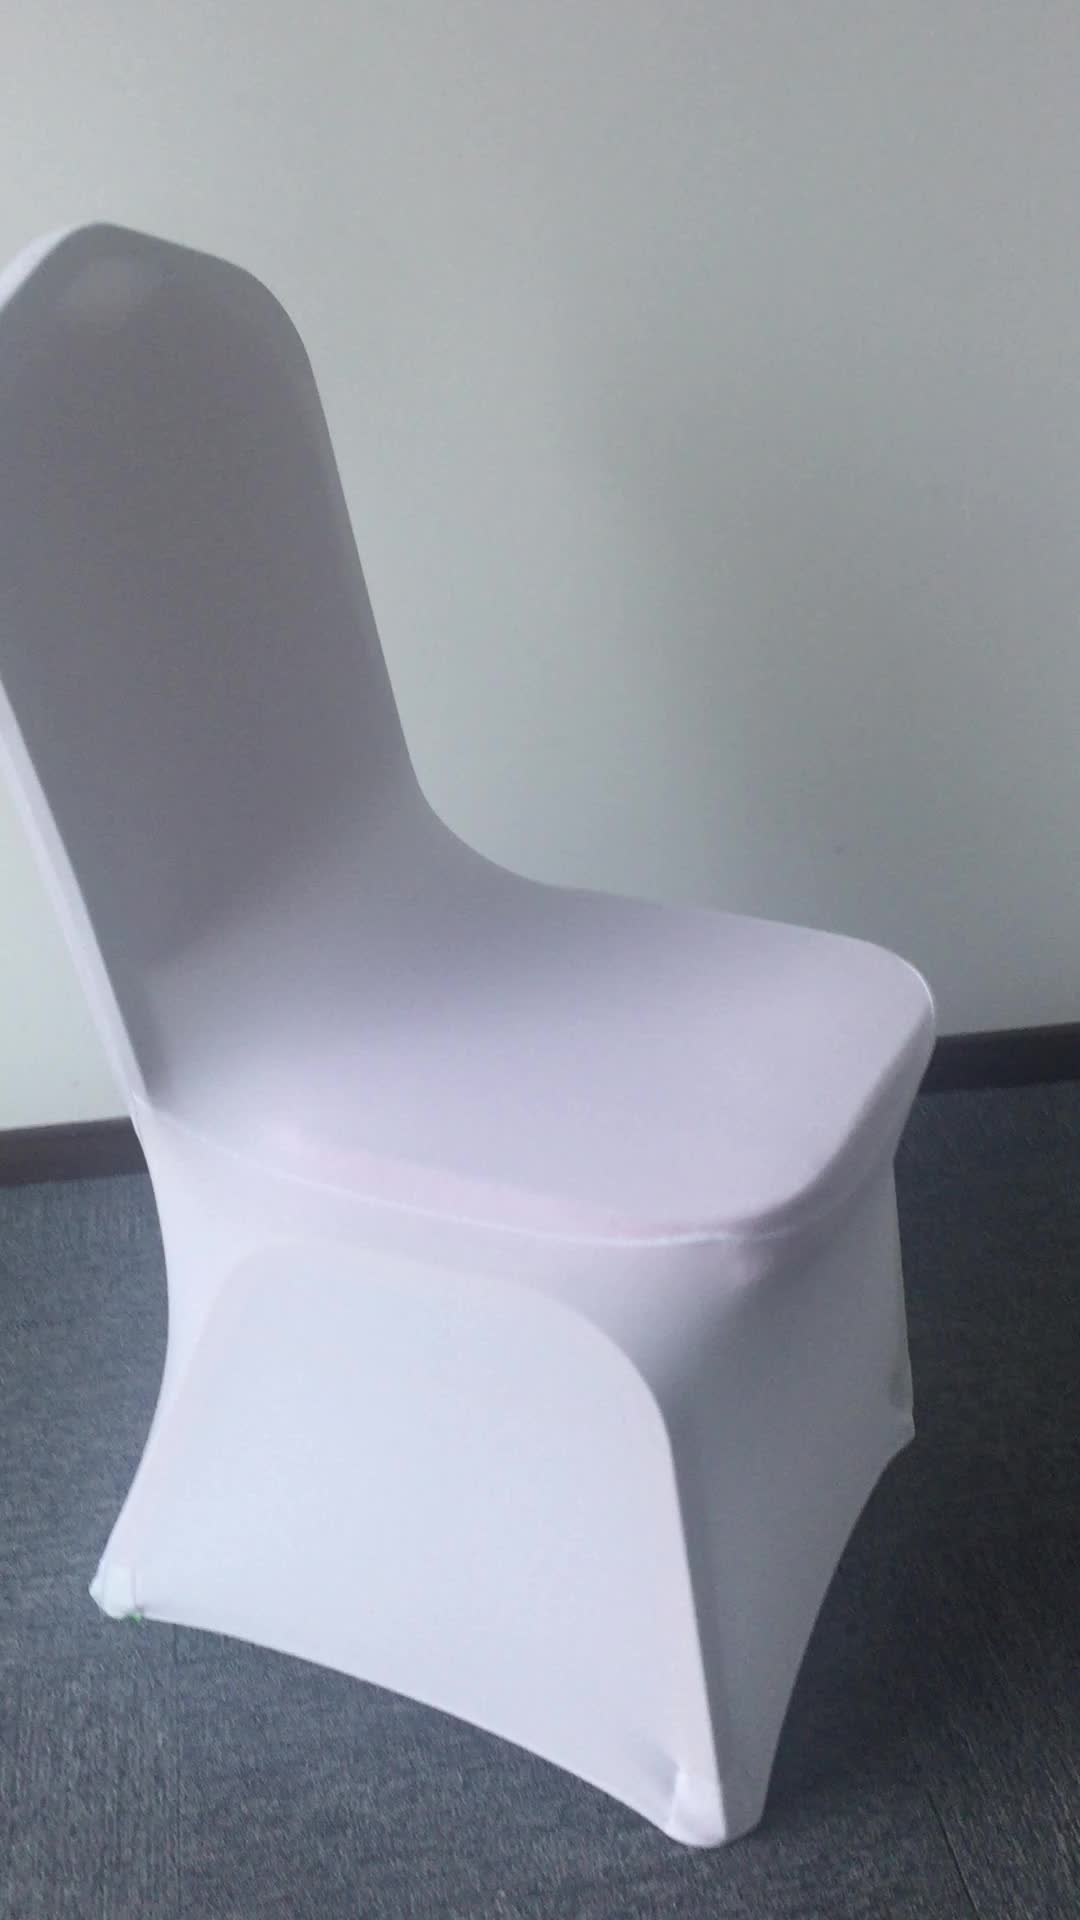 universal banquet chair covers target chairs dining white spandex cover buy